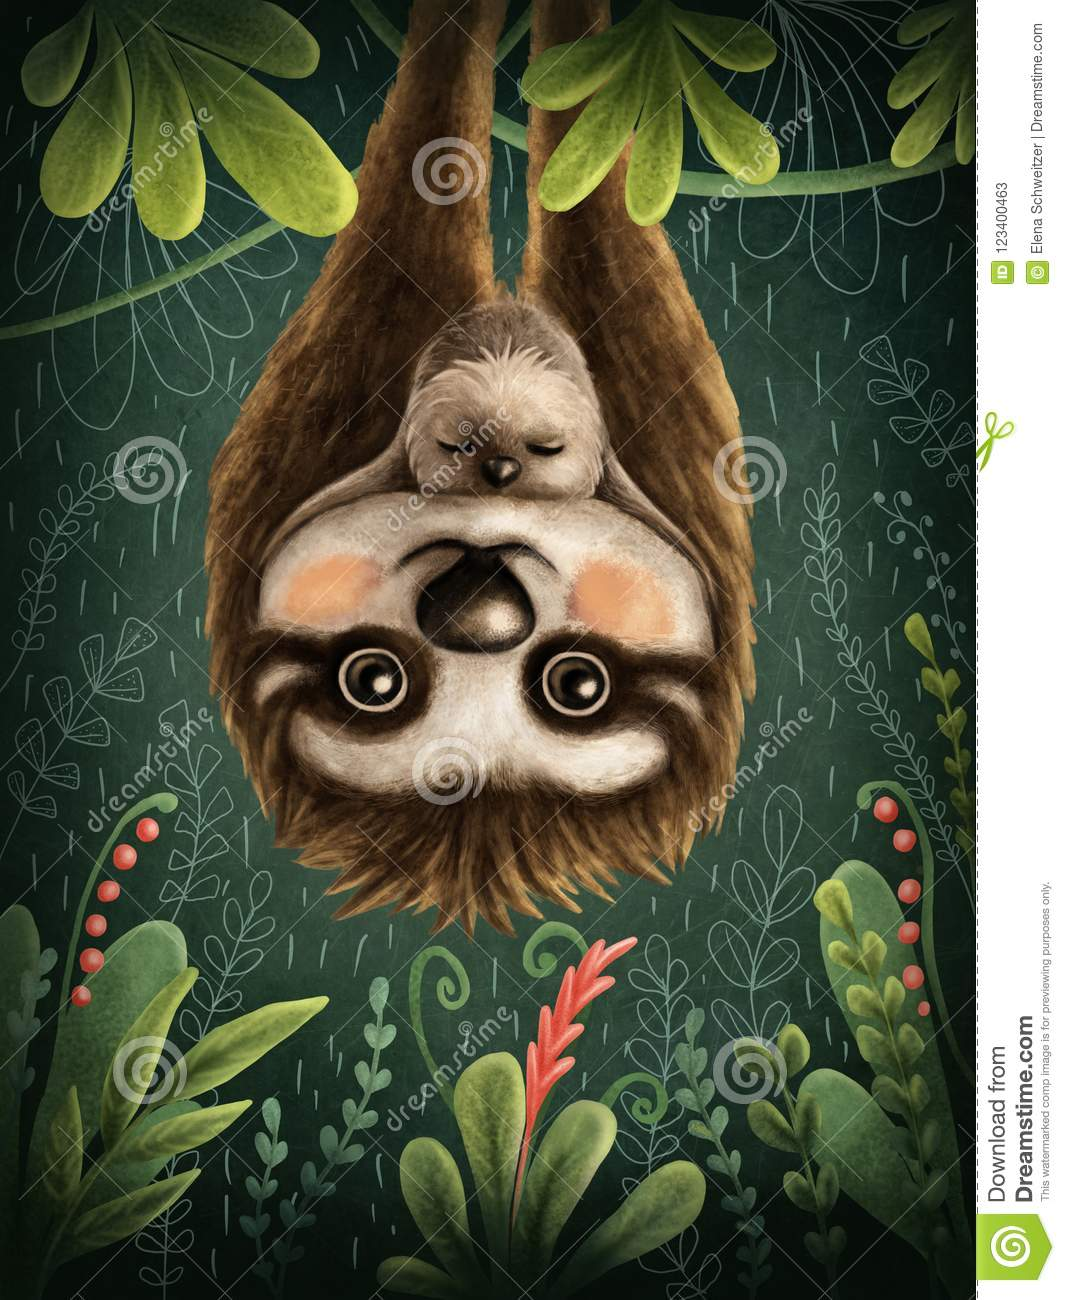 Download Cute sloths stock illustration. Illustration of character - 123400463